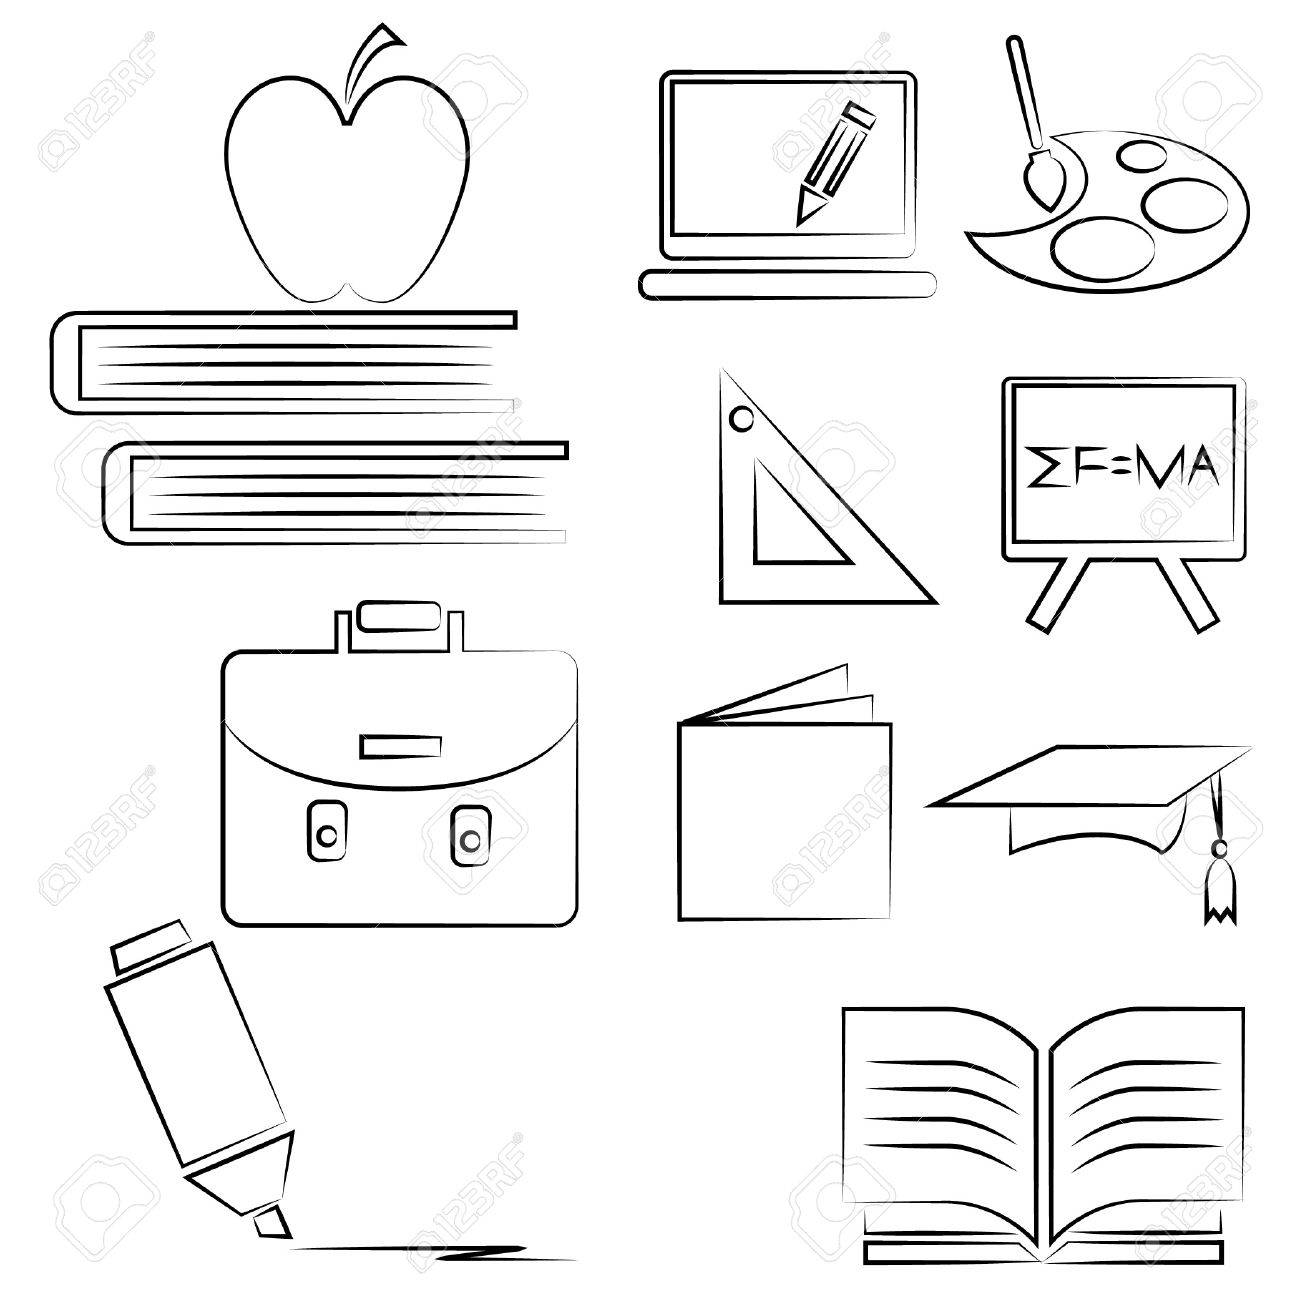 school drawing line set pencil line set royalty free cliparts School Bus Engine Diagram school drawing line set pencil line set stock vector 20959687